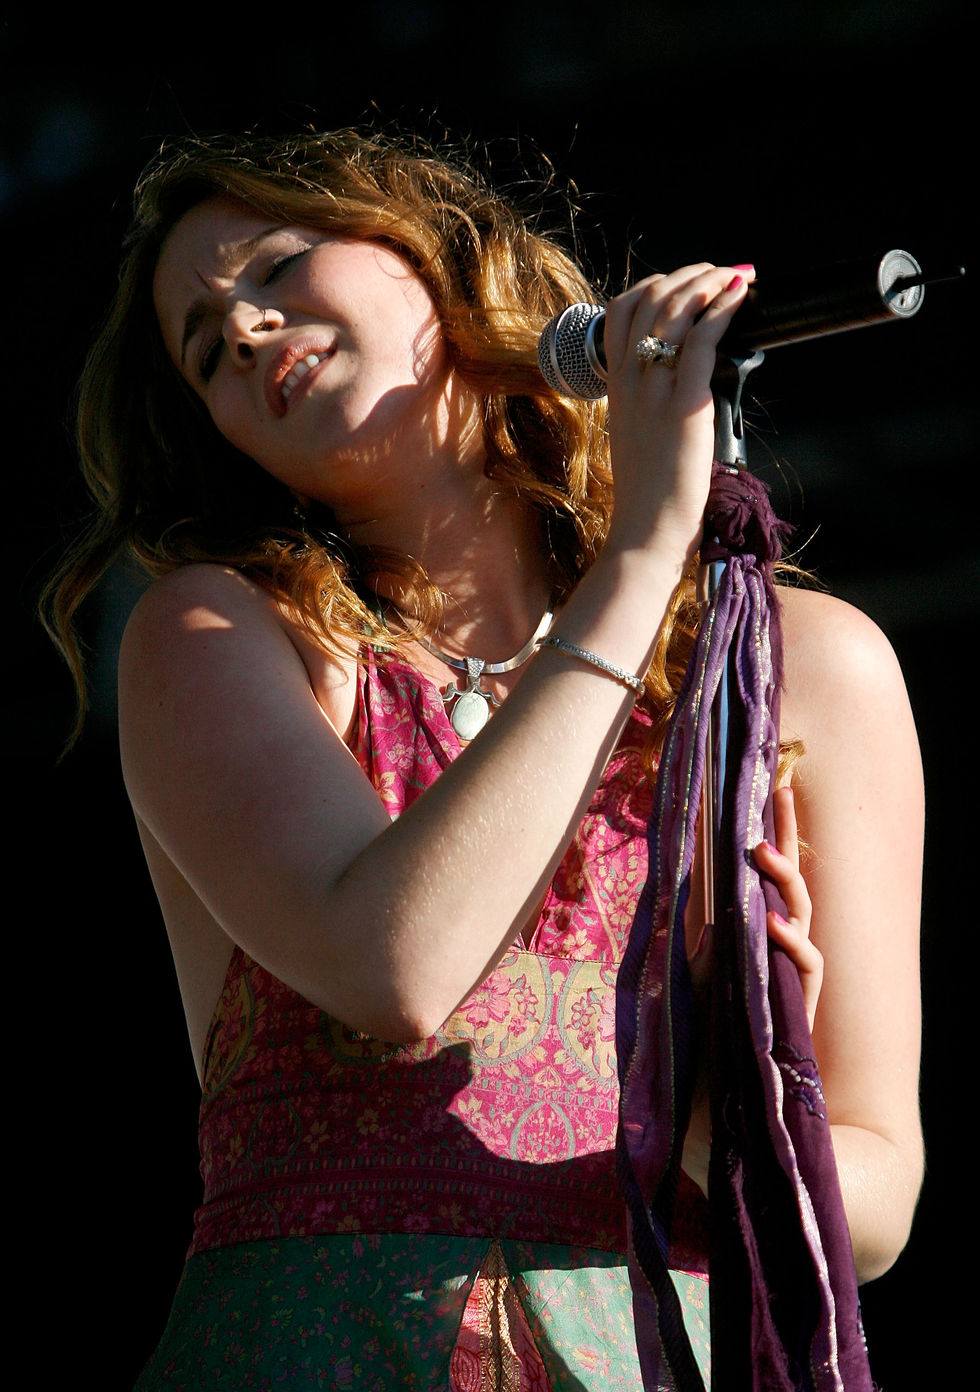 joss-stone-2008-voodoo-experience-at-city-park-in-new-orleans-02